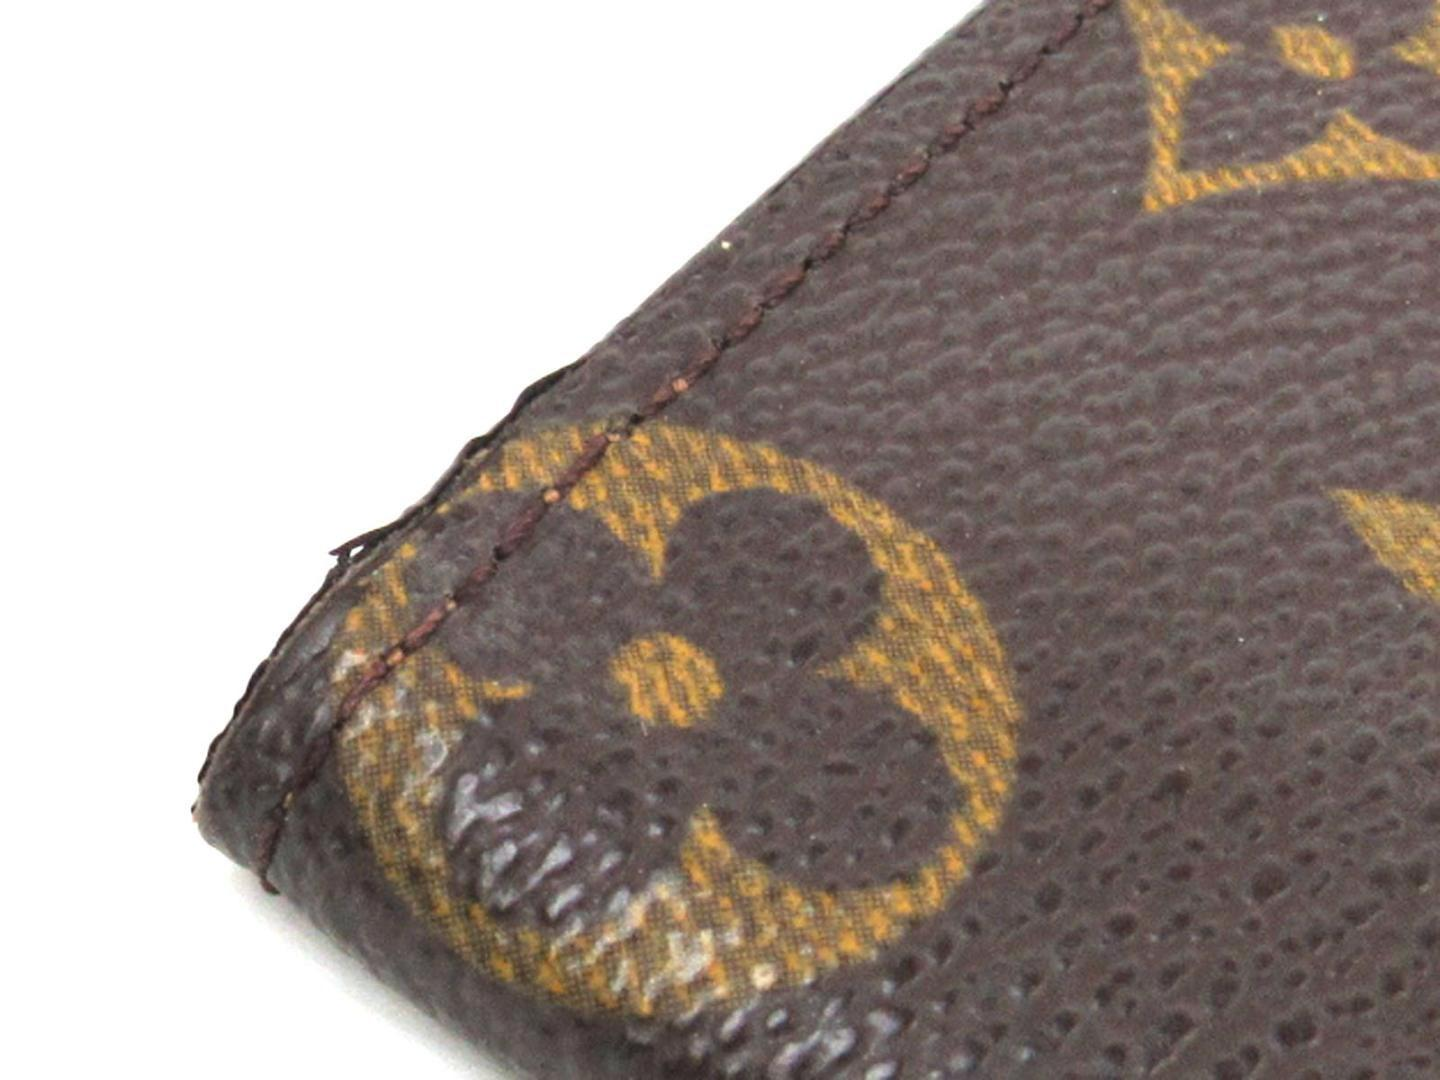 Lyst Louis Vuitton Portecartes Credit Long Wallet Monogram Canvas - Porte carte credit